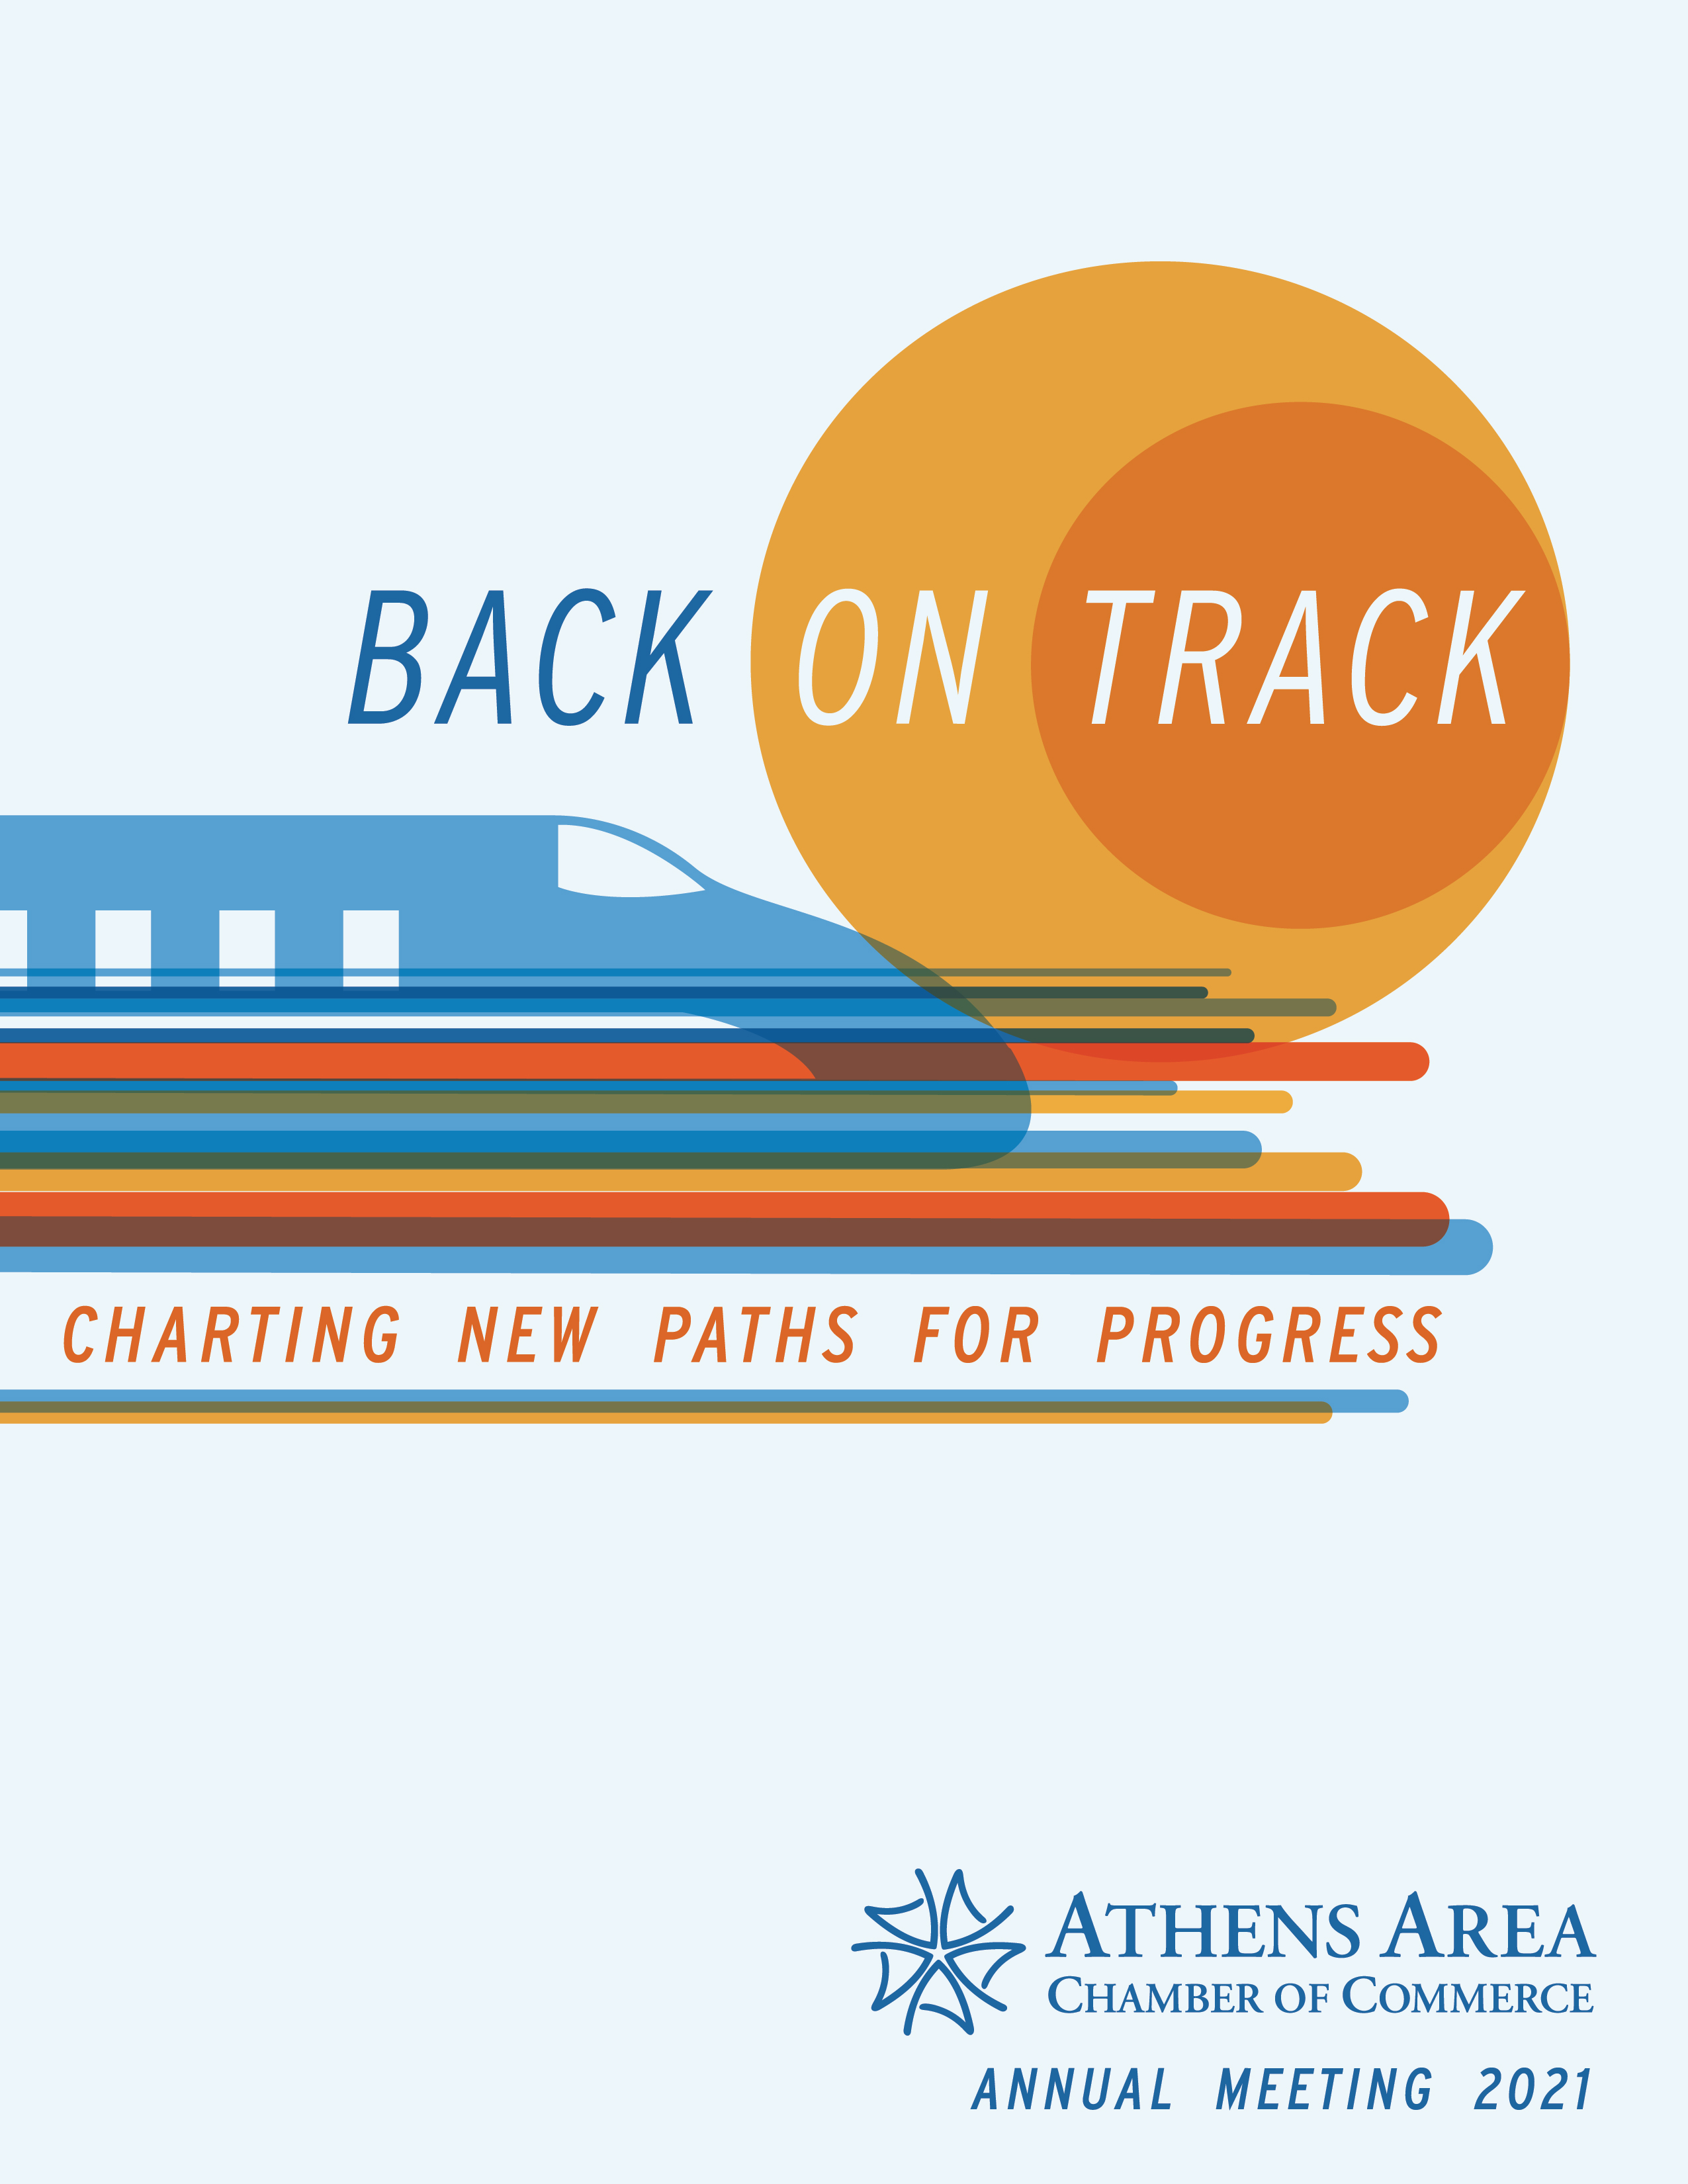 ATHENS_CHAMBER_BACK_ON_TRACK_PORTRAIT